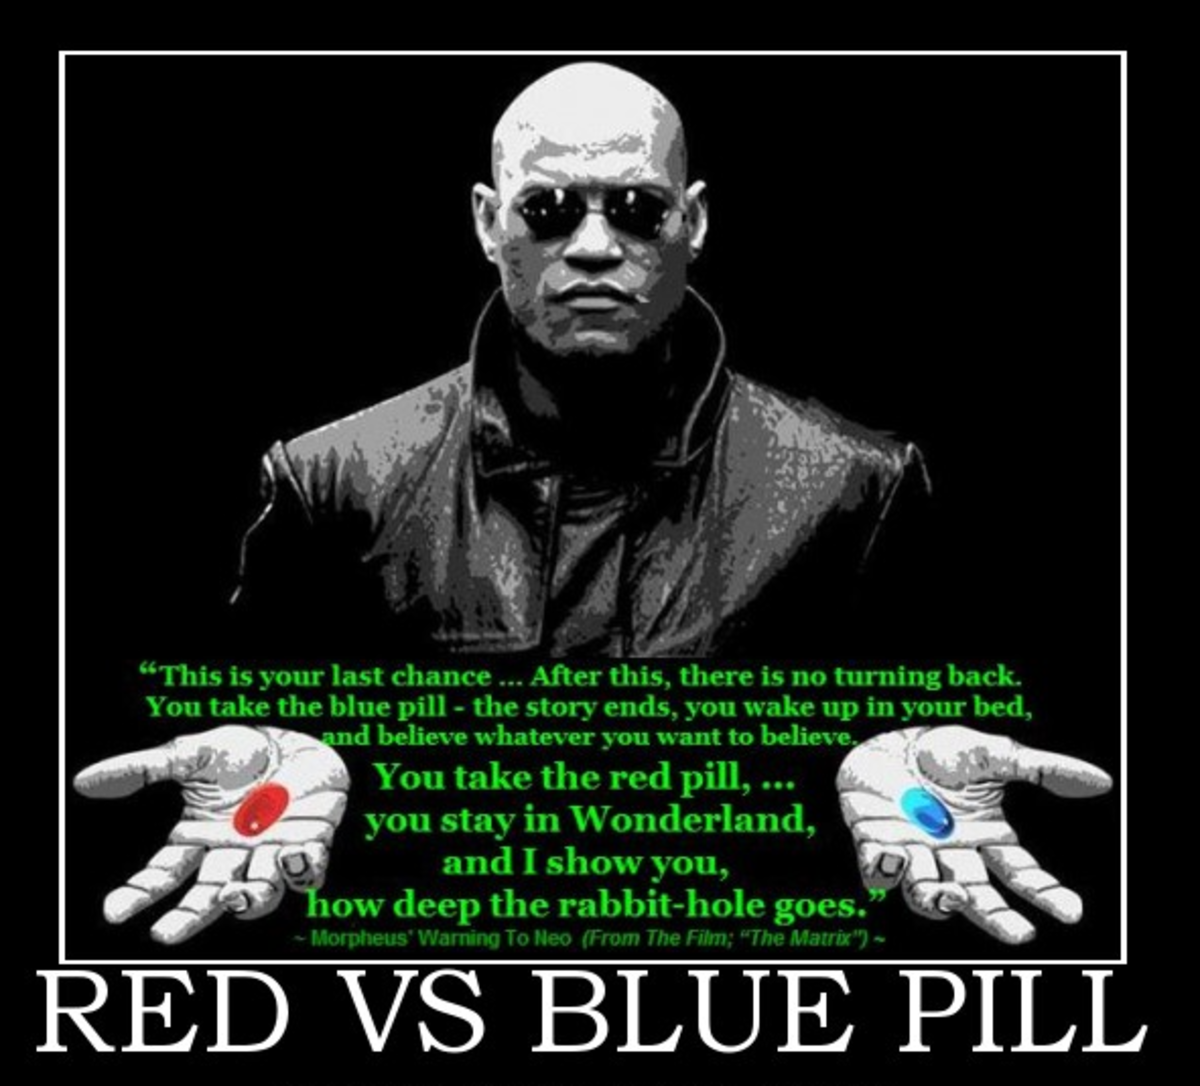 Future of America: The Red Pill or the Blue Pill